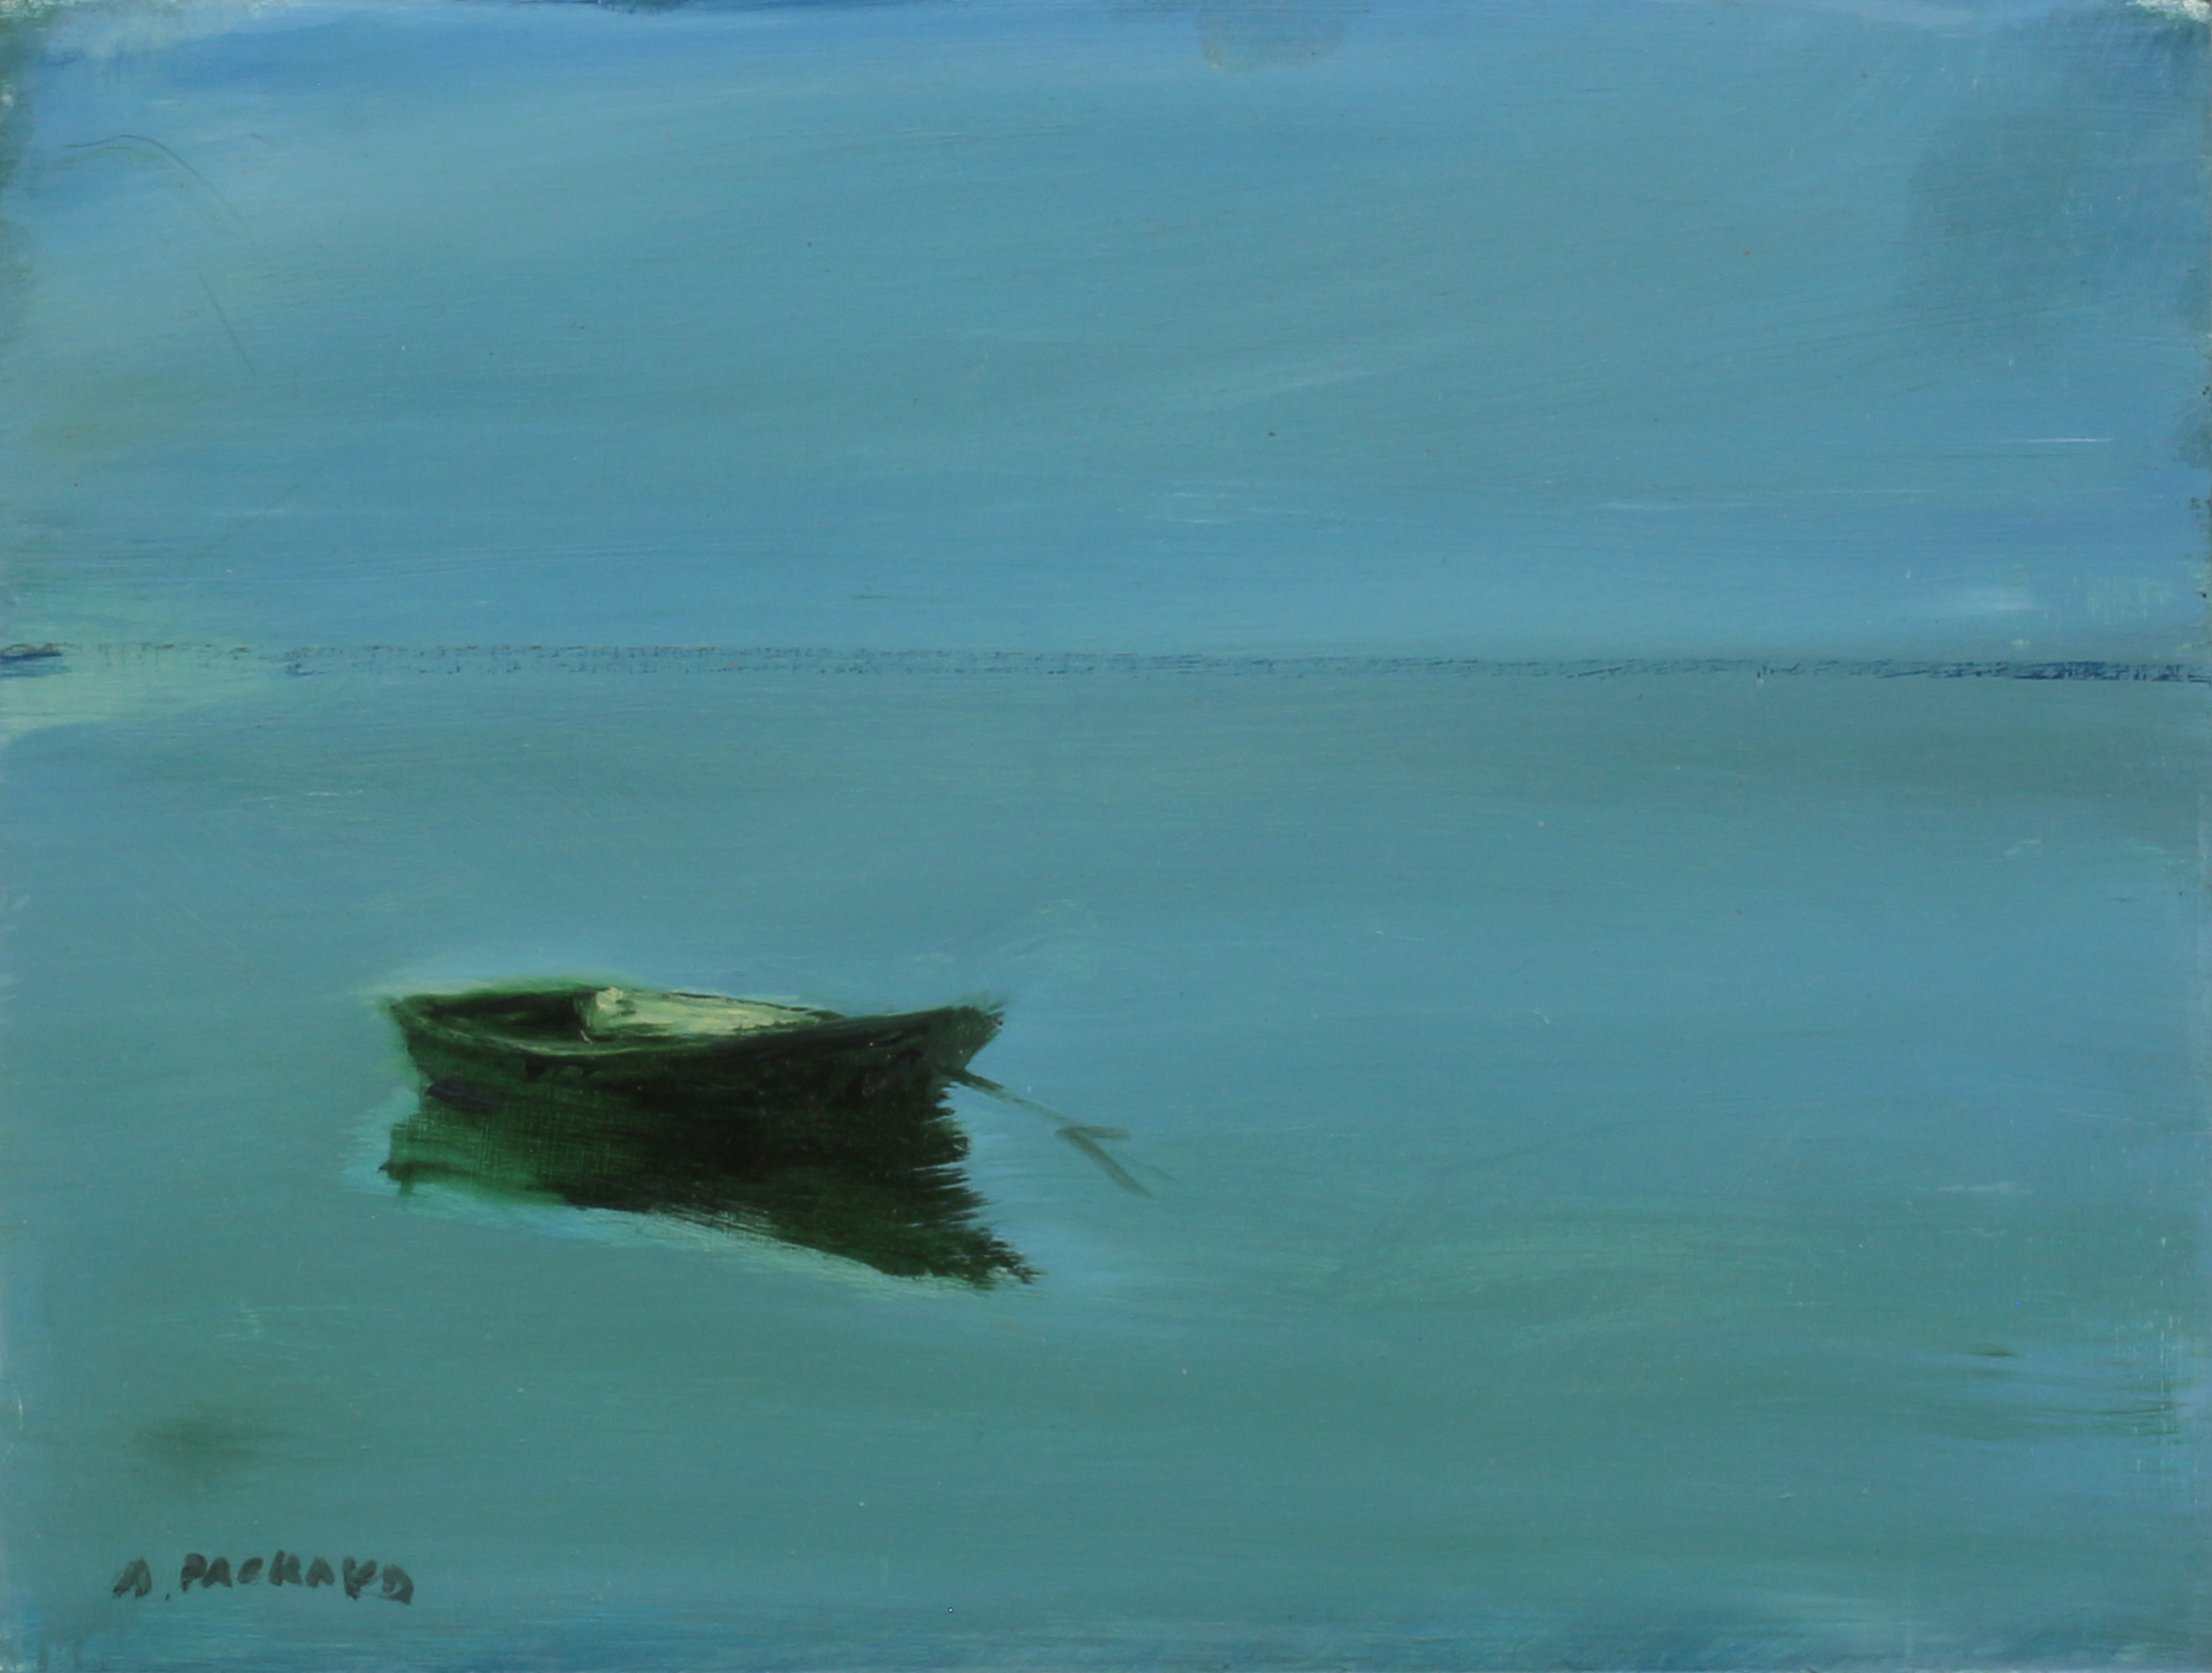 anne packard original